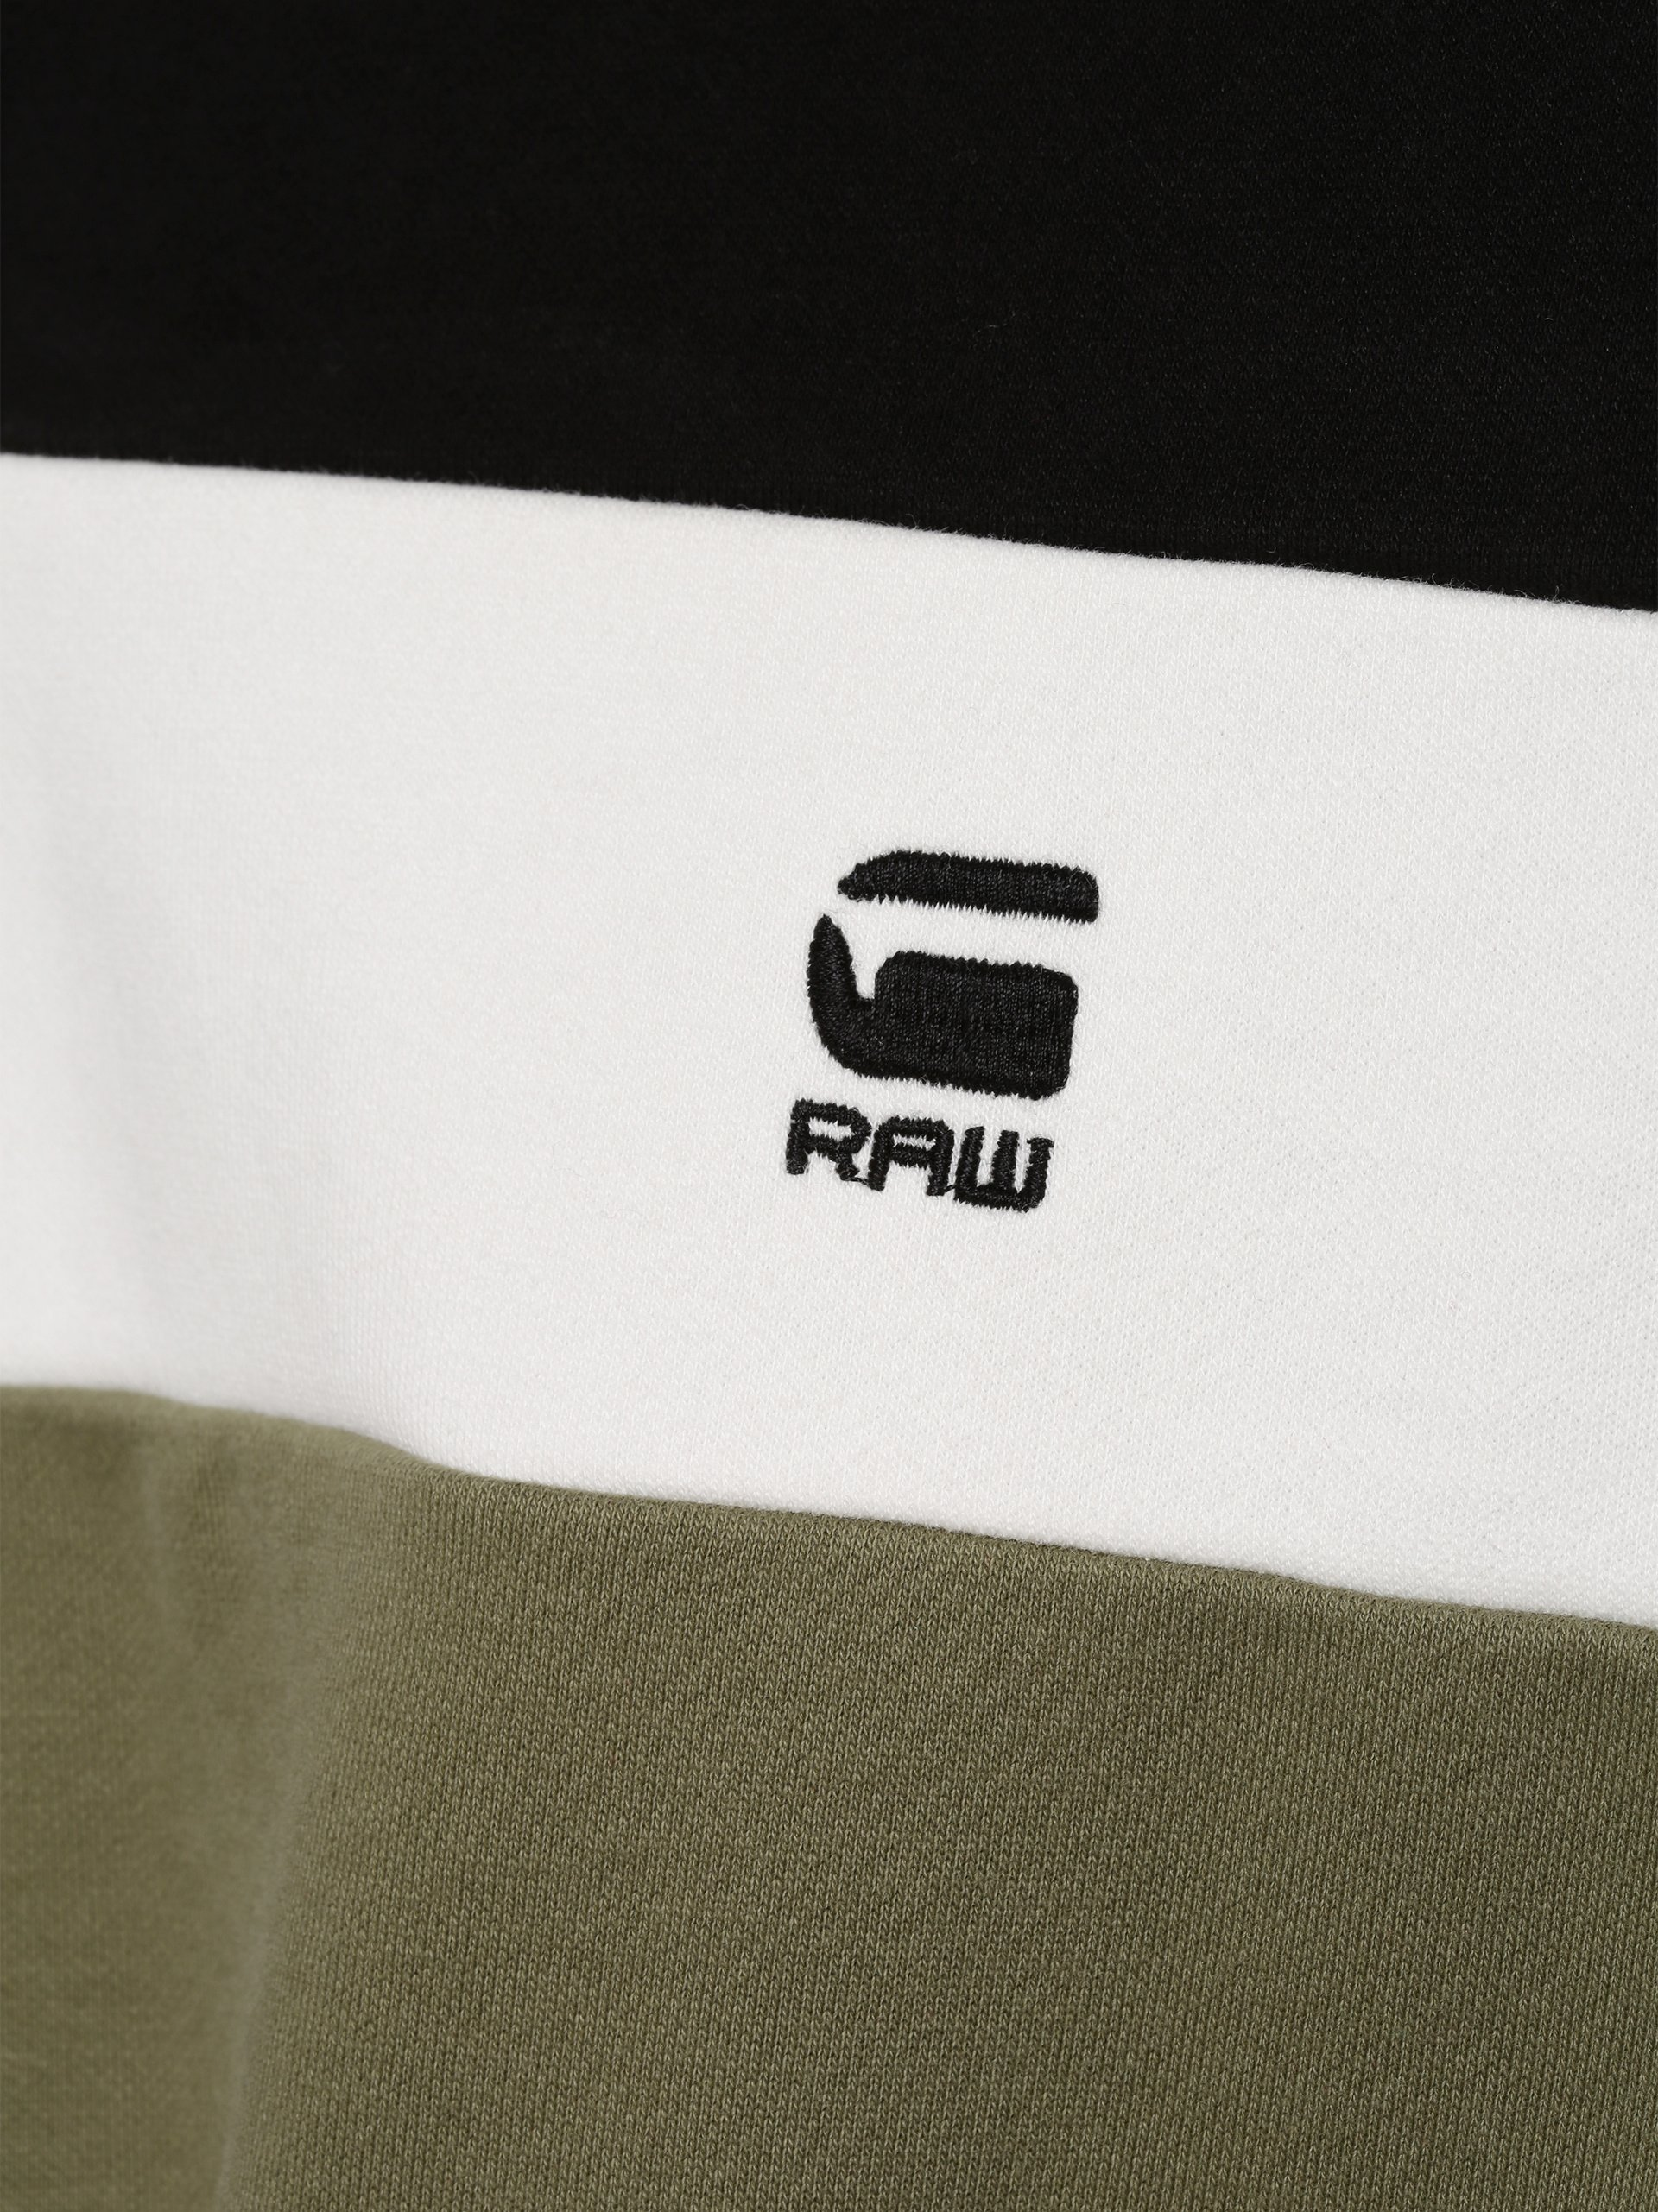 G-Star RAW Męska bluza nierozpinana – Graphic 81 Core